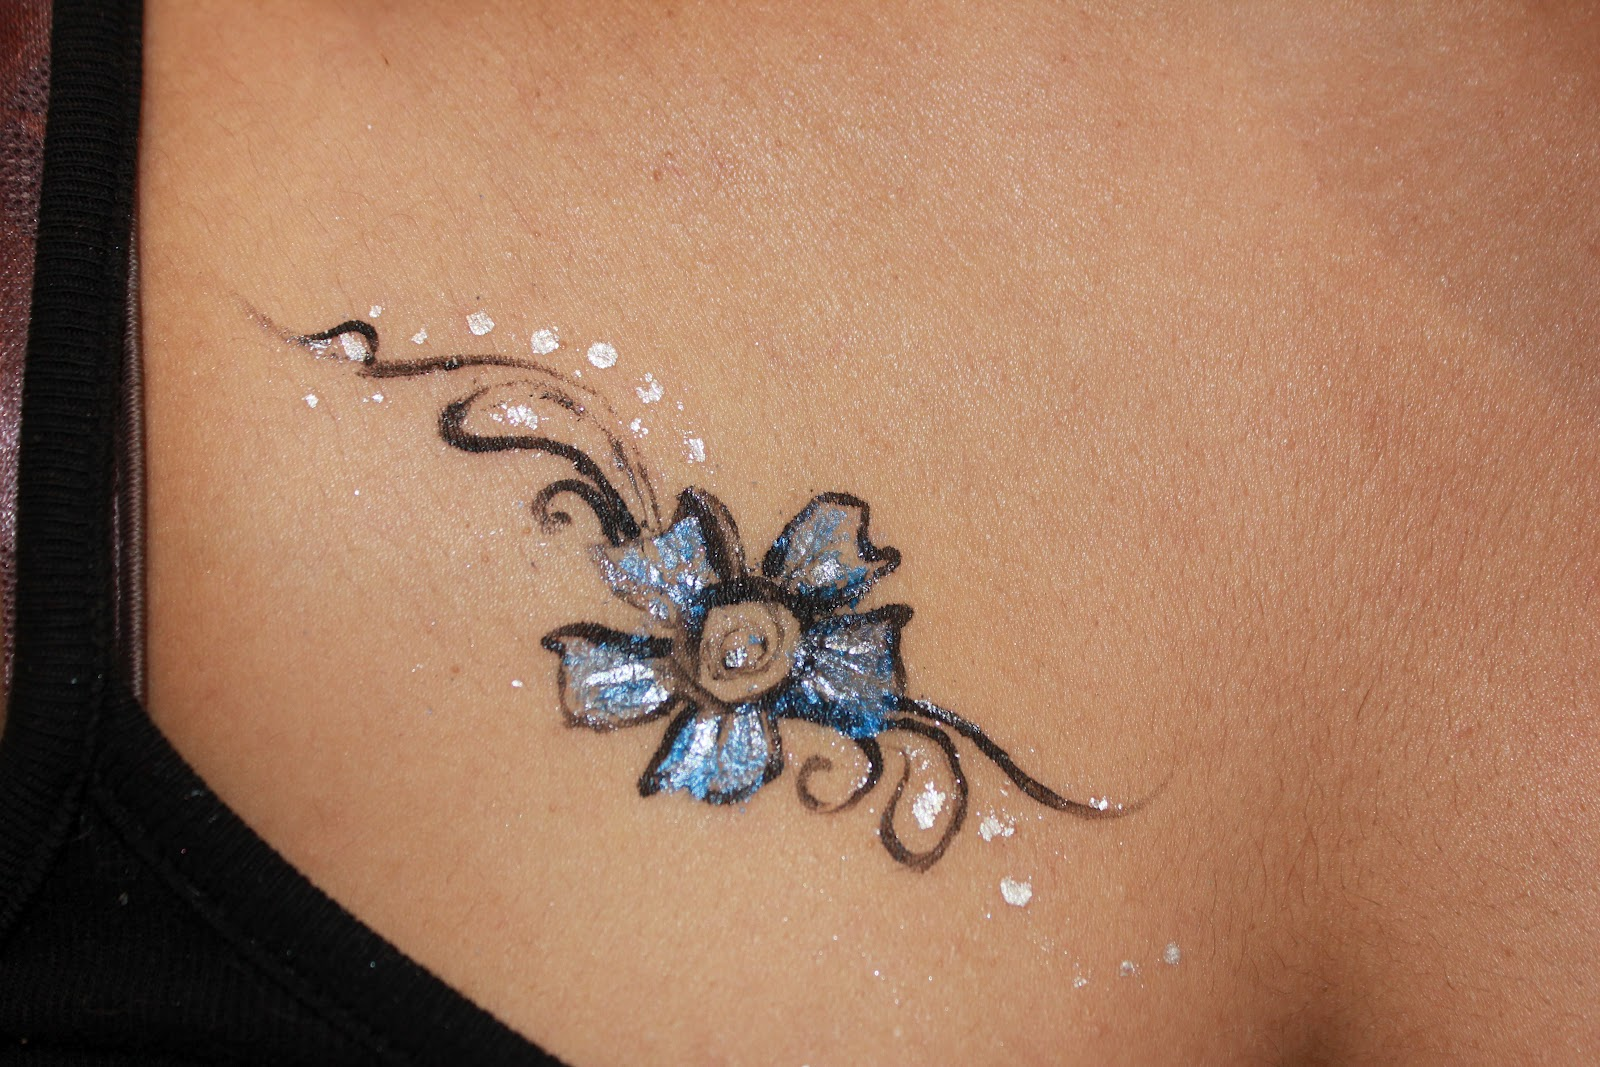 Metallic silver ink tattoos the image for Metallic tattoo ink